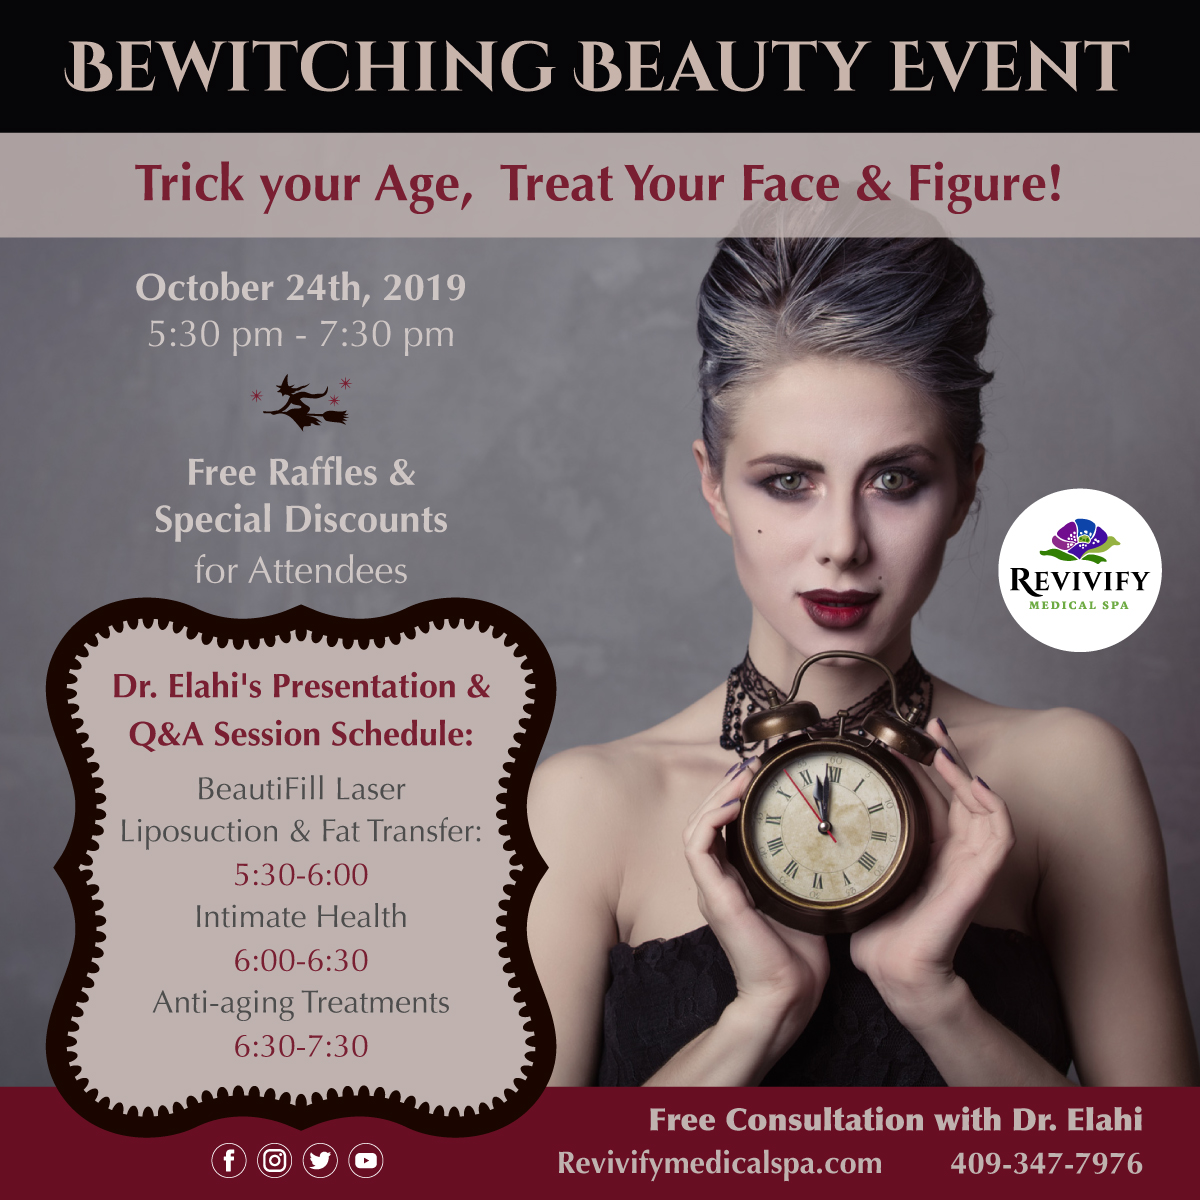 free-bewitching-beauty-event-2019-revivify-medical-spa-beaumont-texas